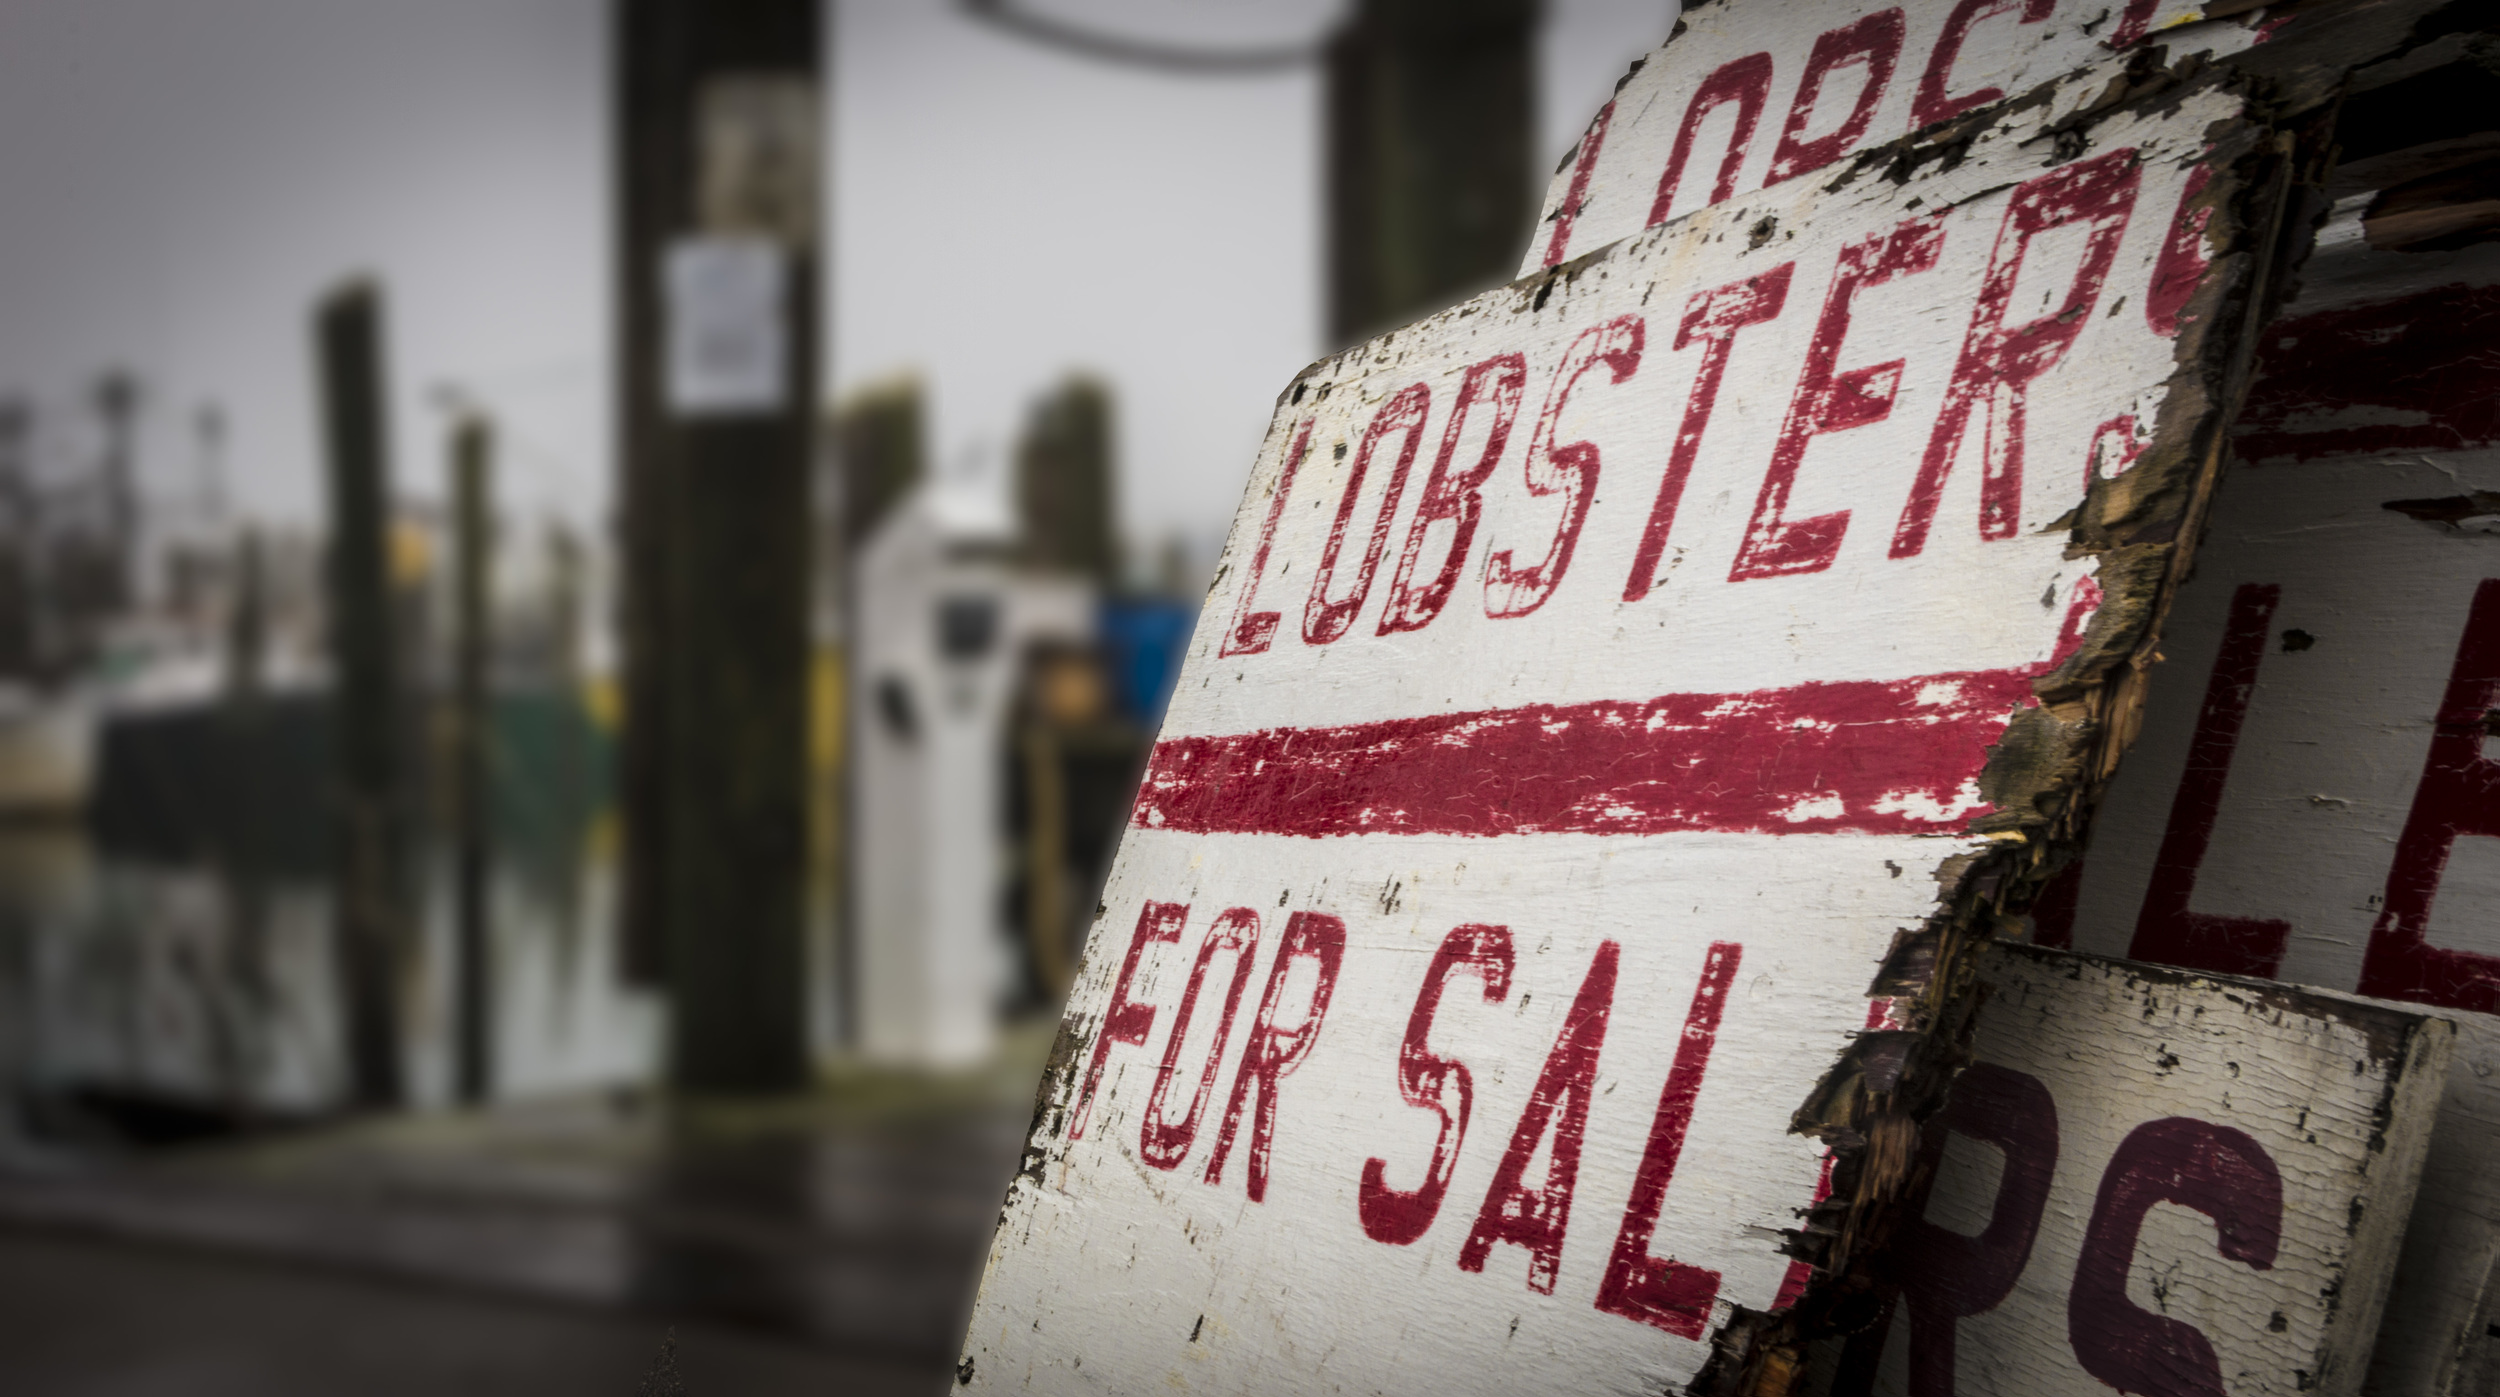 Though tourists no longer flock to the docks of Galilee, R.I., during the foul winter weather, signs advertising lobsters for sale right off the boat remain on display for the few who may venture to the harbor during the cold New England winter.